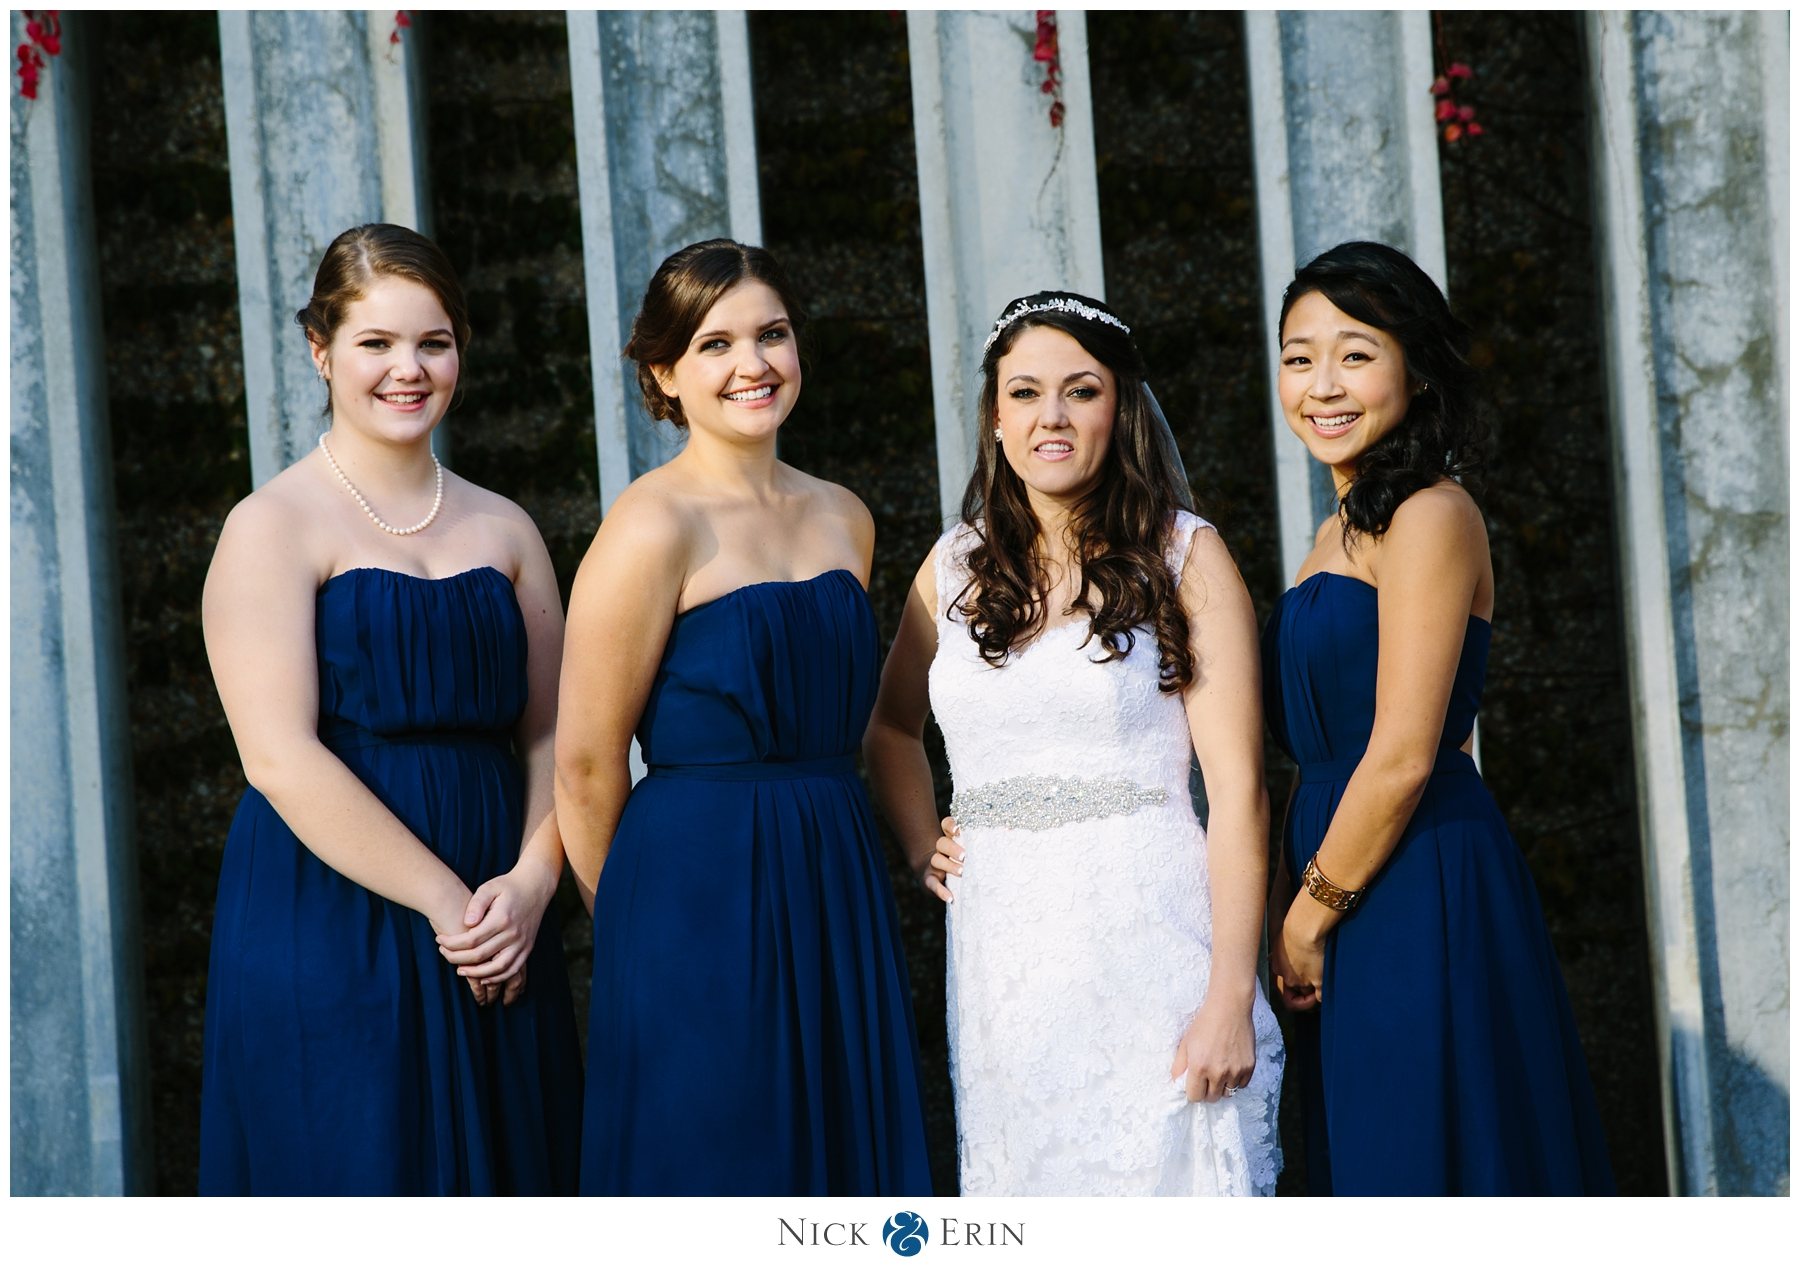 Donner_Photography_Fort Myer Wedding_Katie & Will_0023